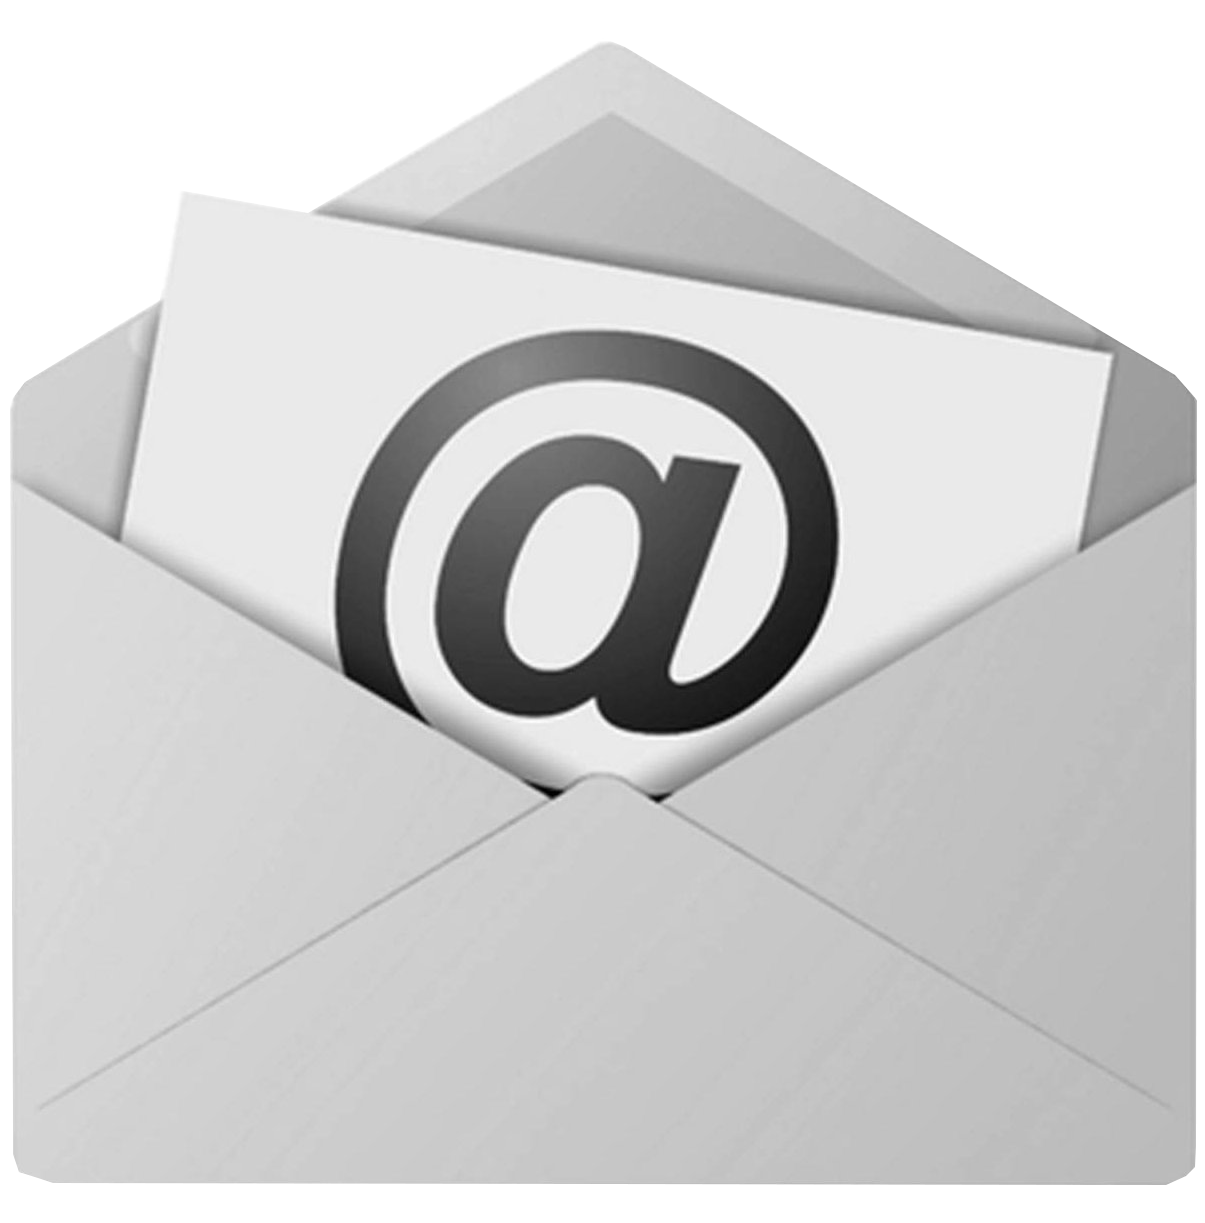 Icons Hotel Park Terme Computer Address Newsletter PNG Image